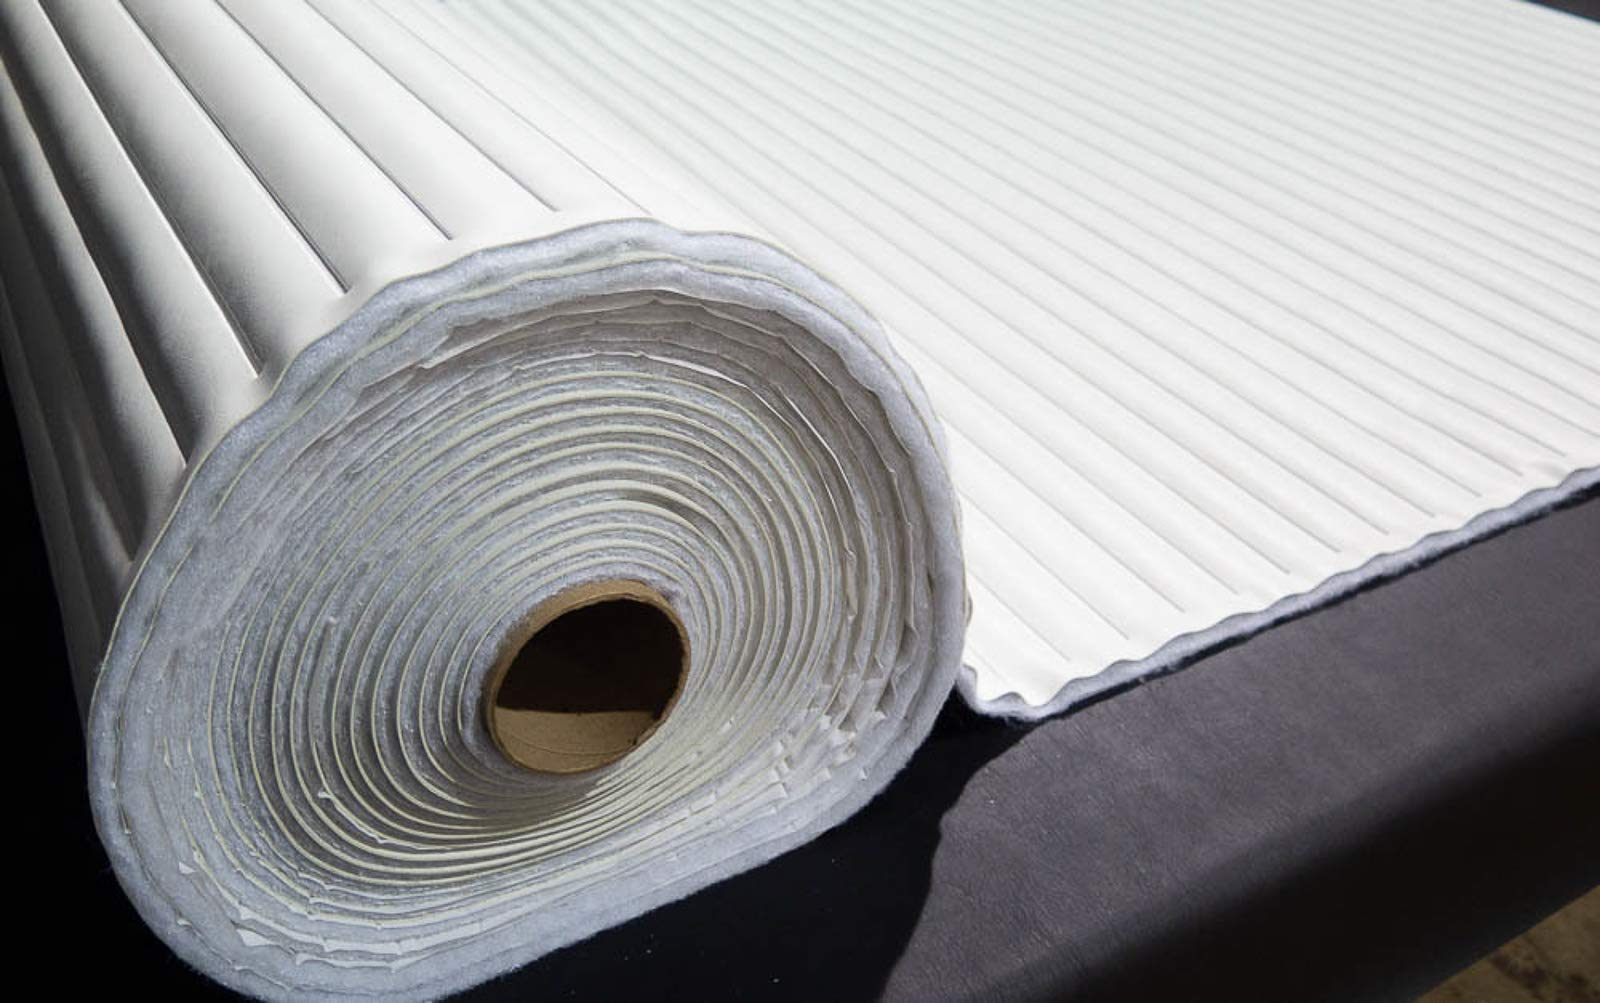 Pleated Marine Vinyl Upholstery Fabric Bright White 54'' Wide by 5 Yards Boat Auto by Bry-Tech Marine1 (Image #4)